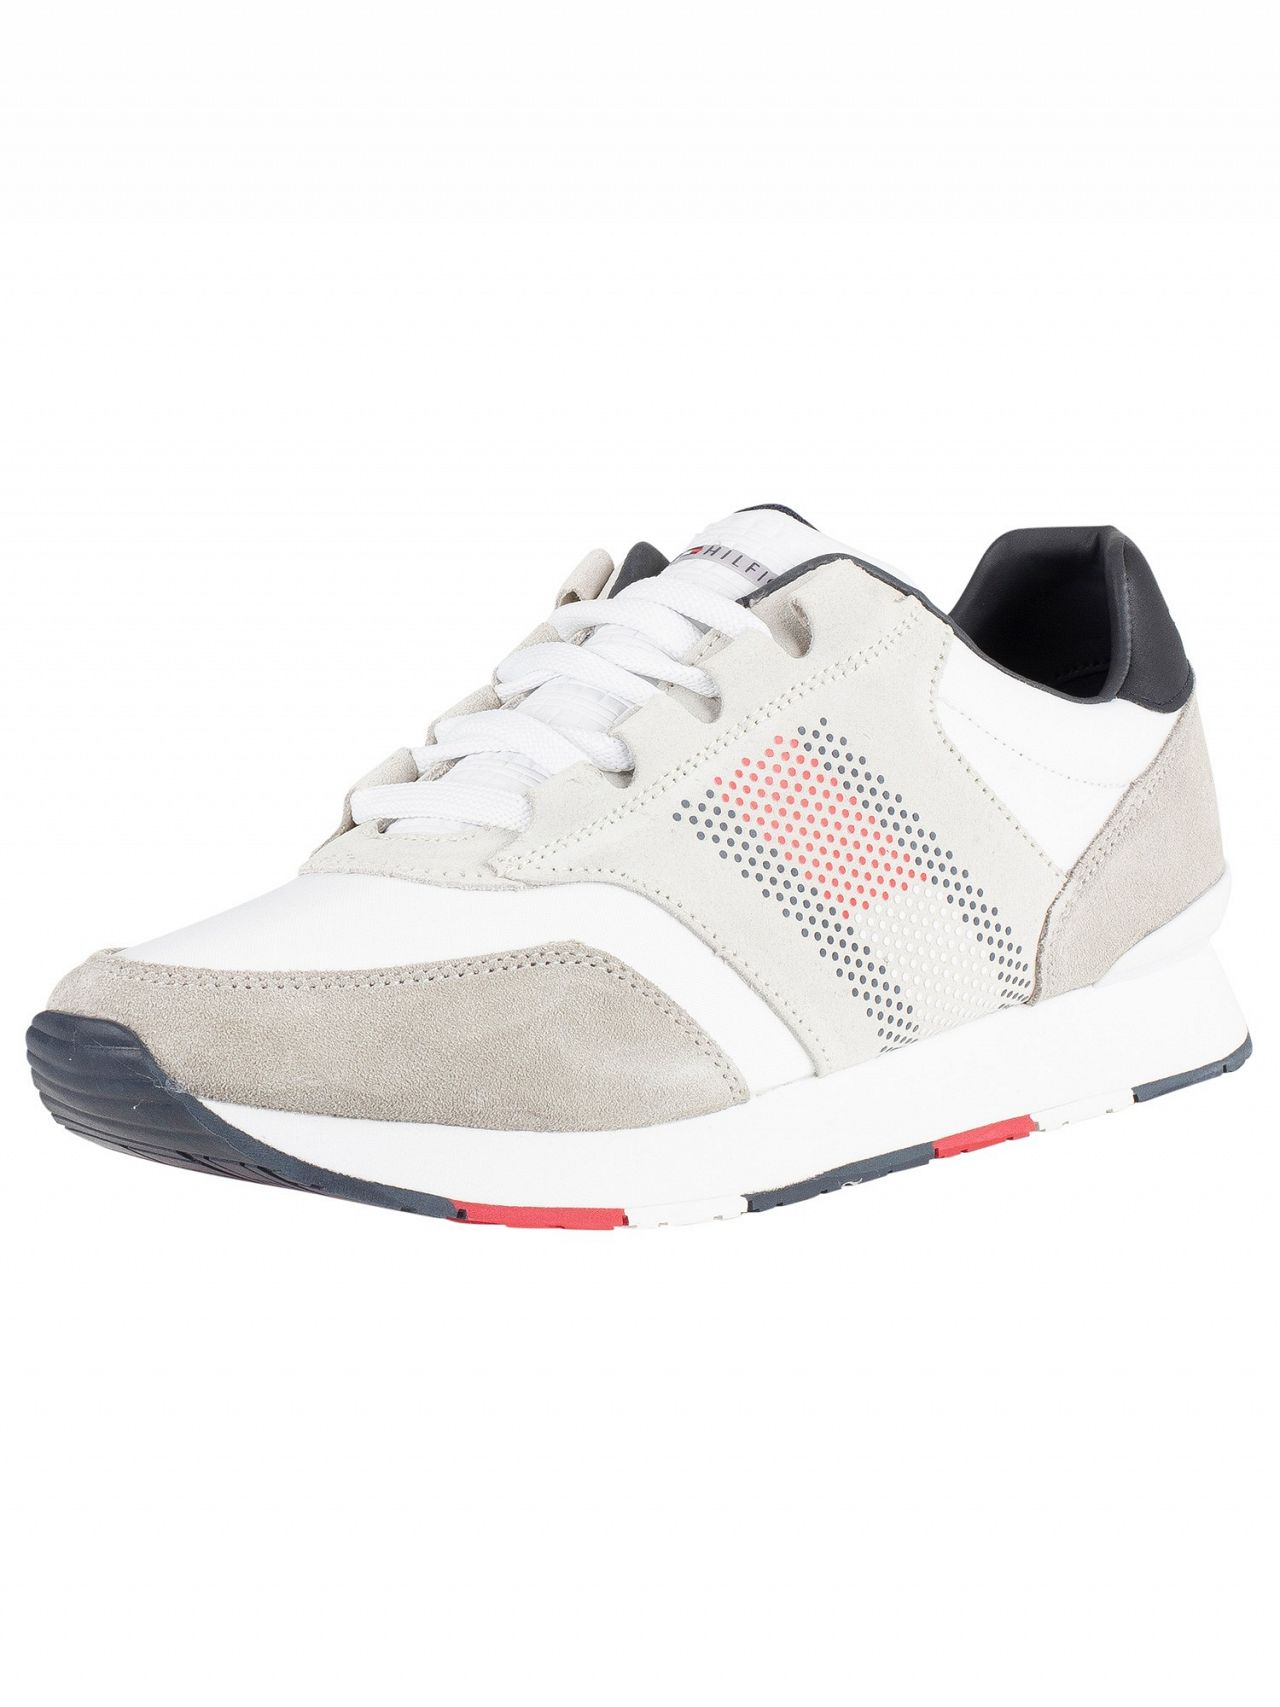 283591cf Tommy Hilfiger White Corporate Material Mix Runner Trainers | Standout